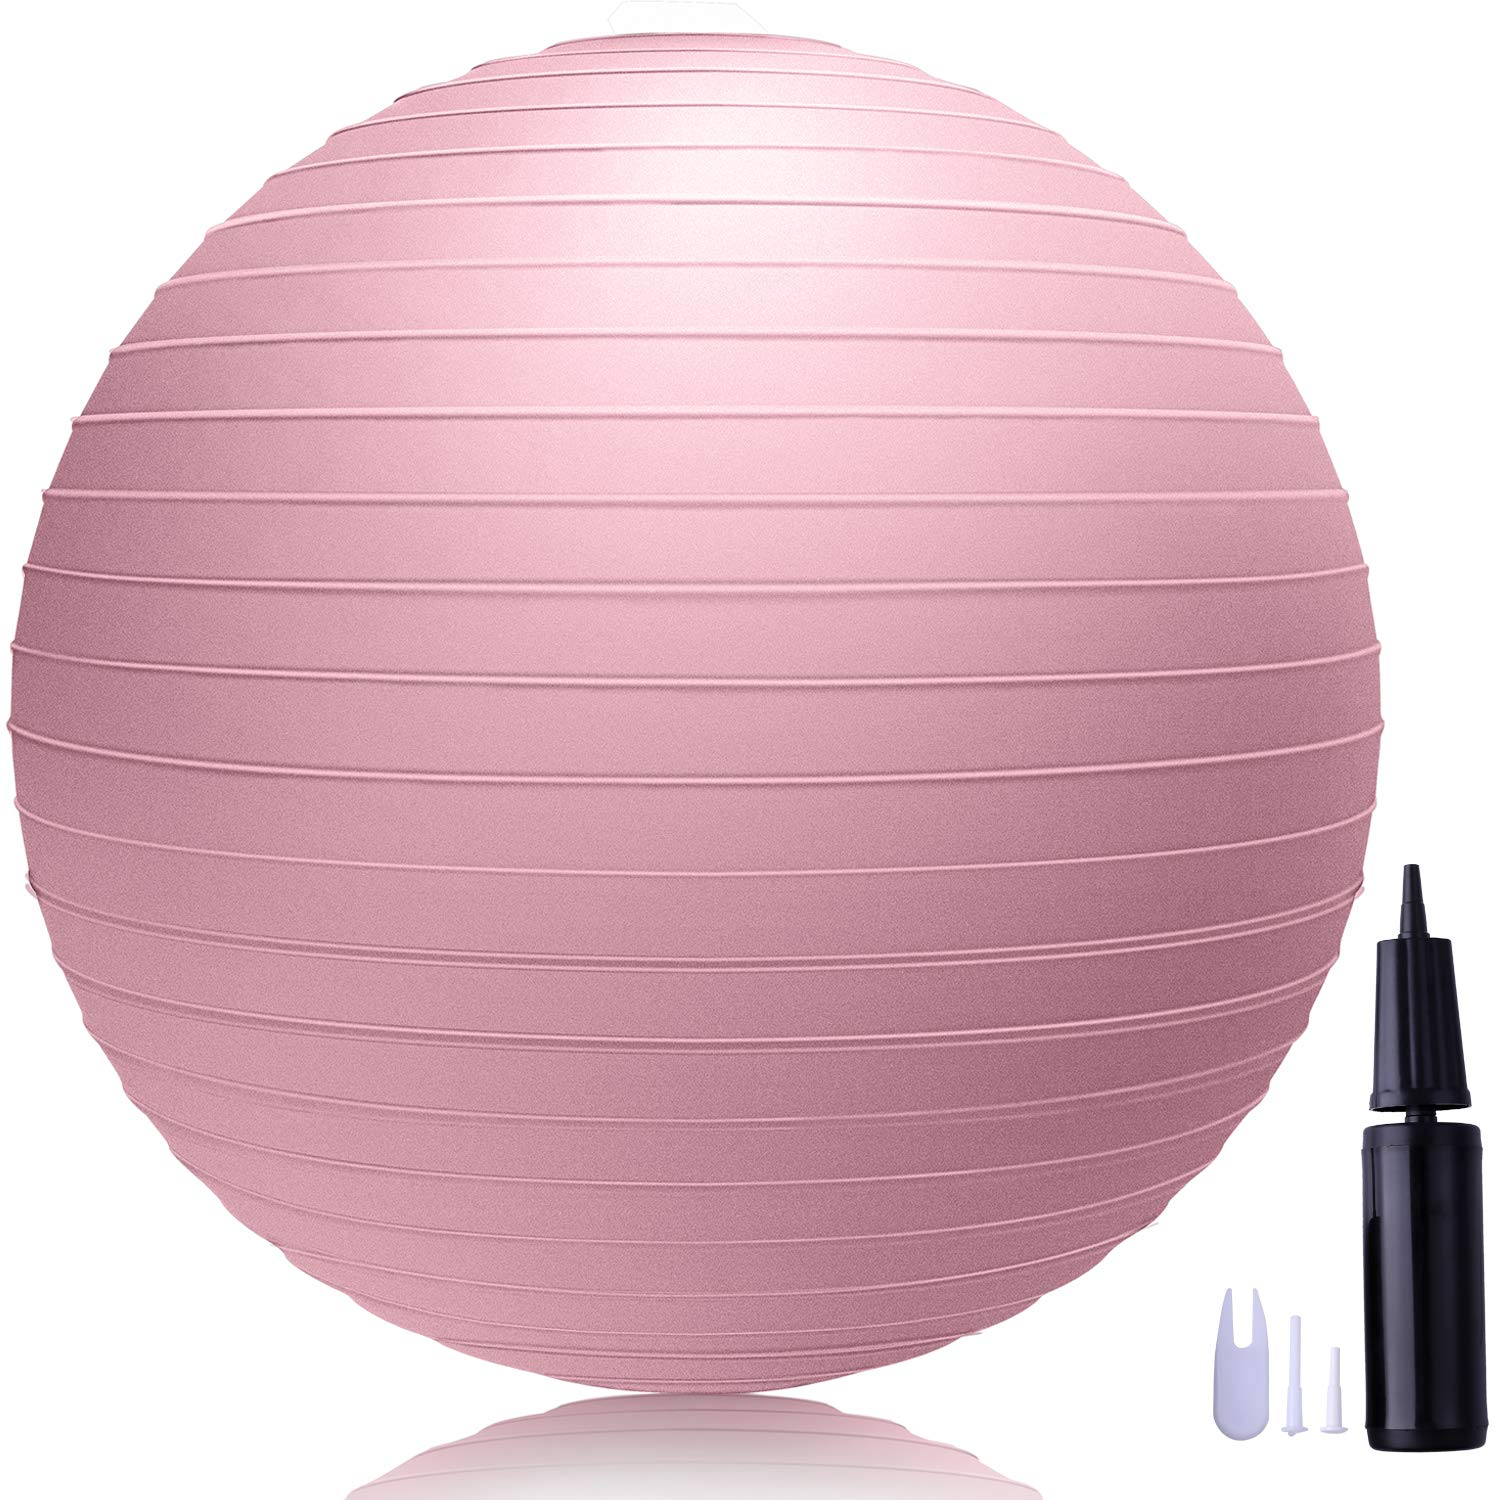 LAKIBOLE 75cm Exercise Ball Anti-Burst Yoga Ball with Quick Pump for Office & Home & Gym (Pink)